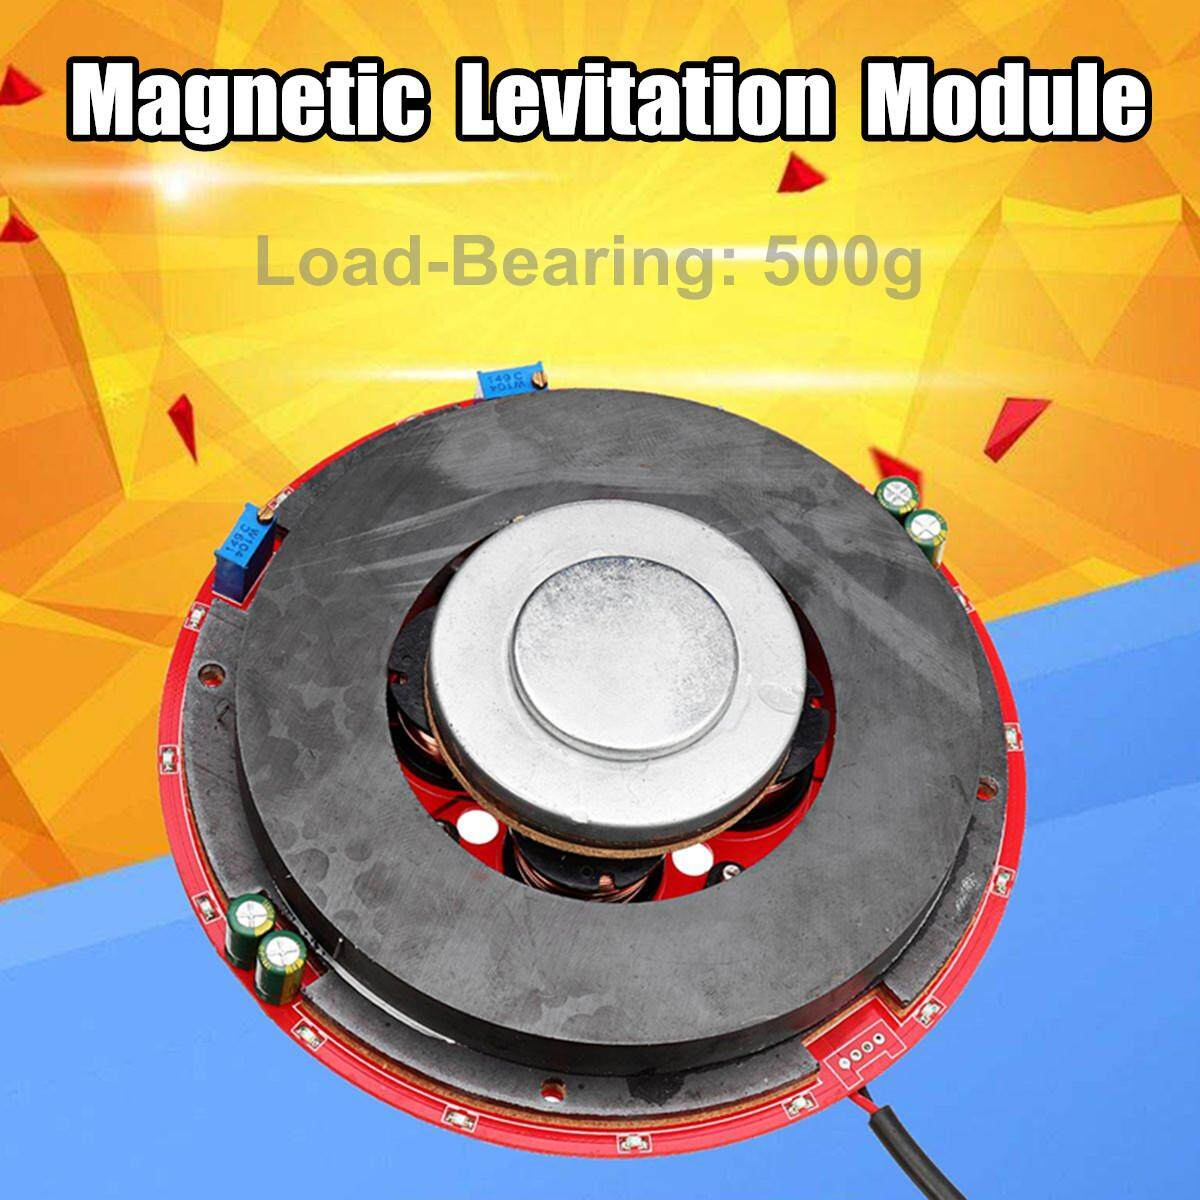 DIY 500g Magnetic Levitation Module Floating Platform Accessories + Power Supply